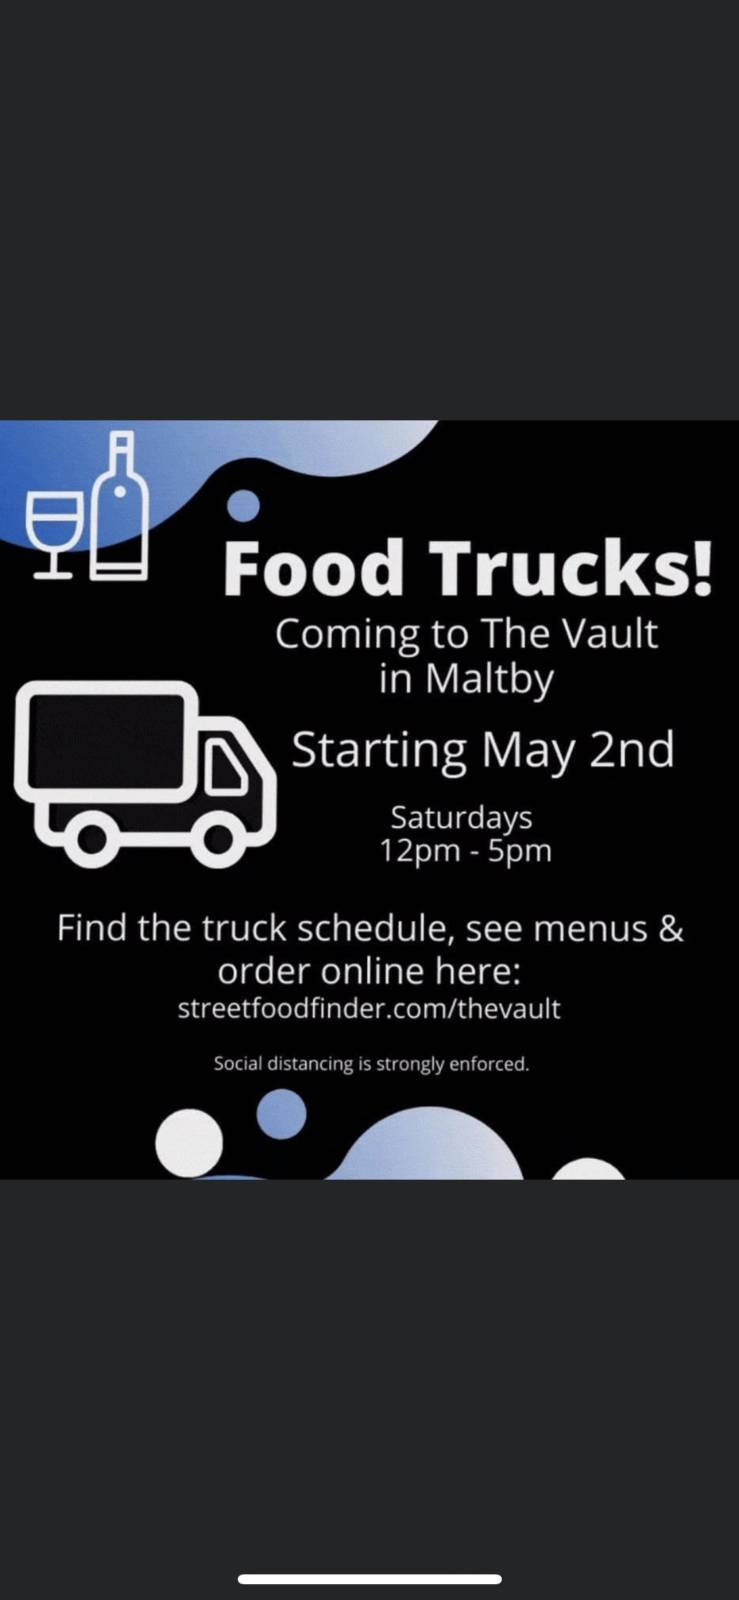 9A1B6C2B 624A 492E B7B0 2126AE82DB43 wi1aUe.tmp  - Lloyd's BBQ Food Truck at The Vault at Maltby!